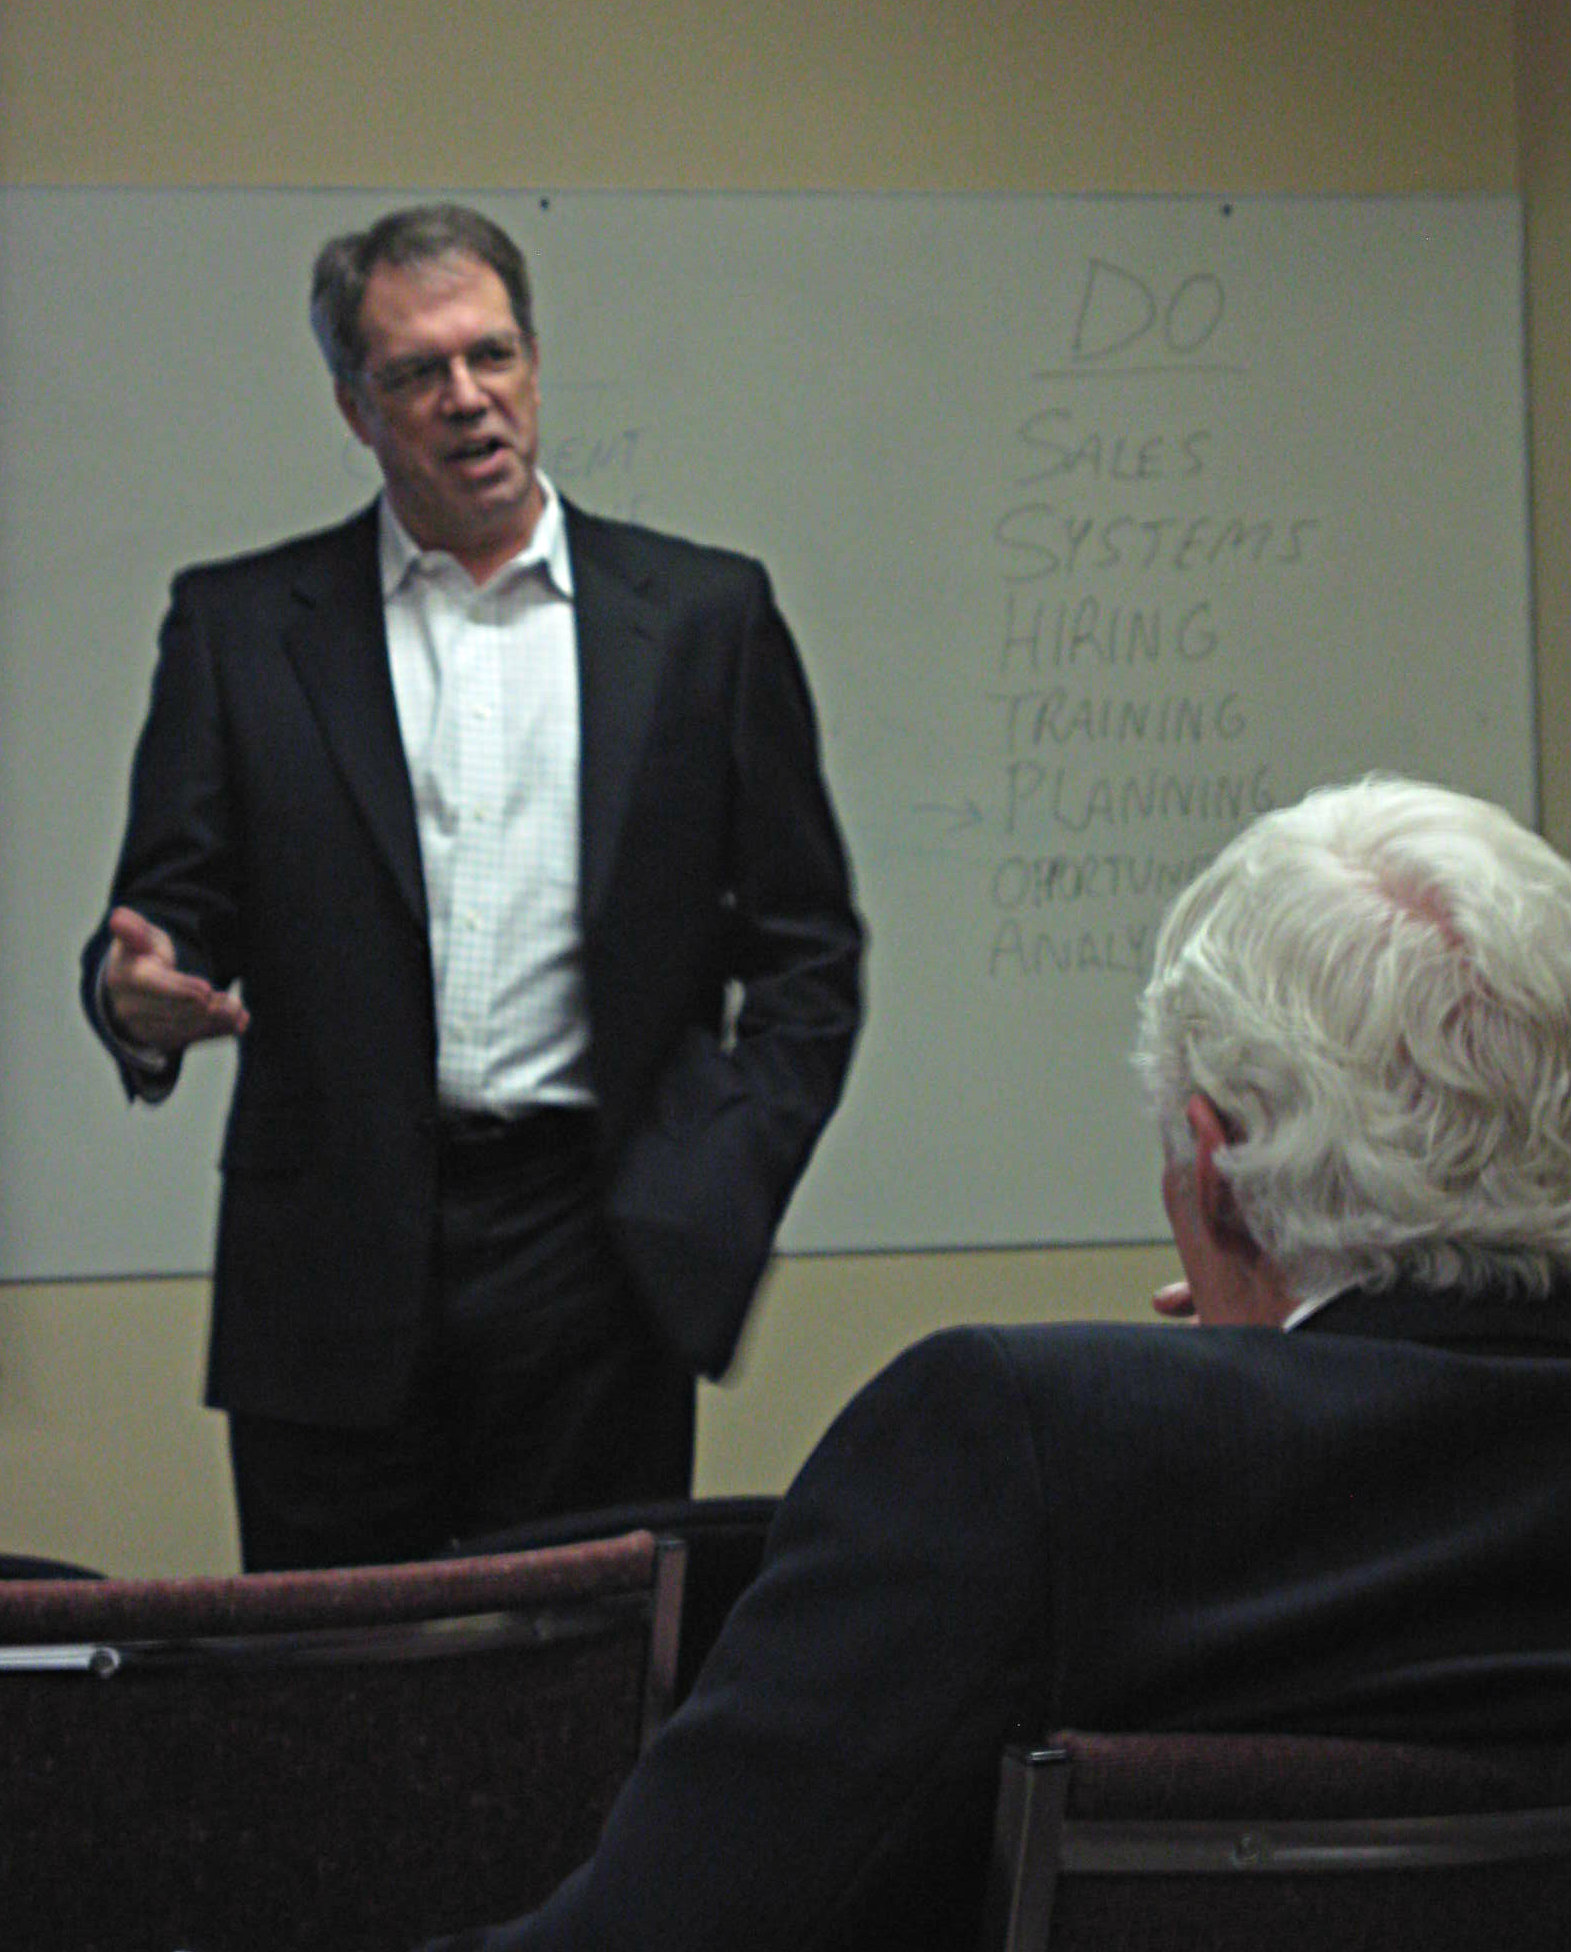 Grant Mellow, ActionCOACH training